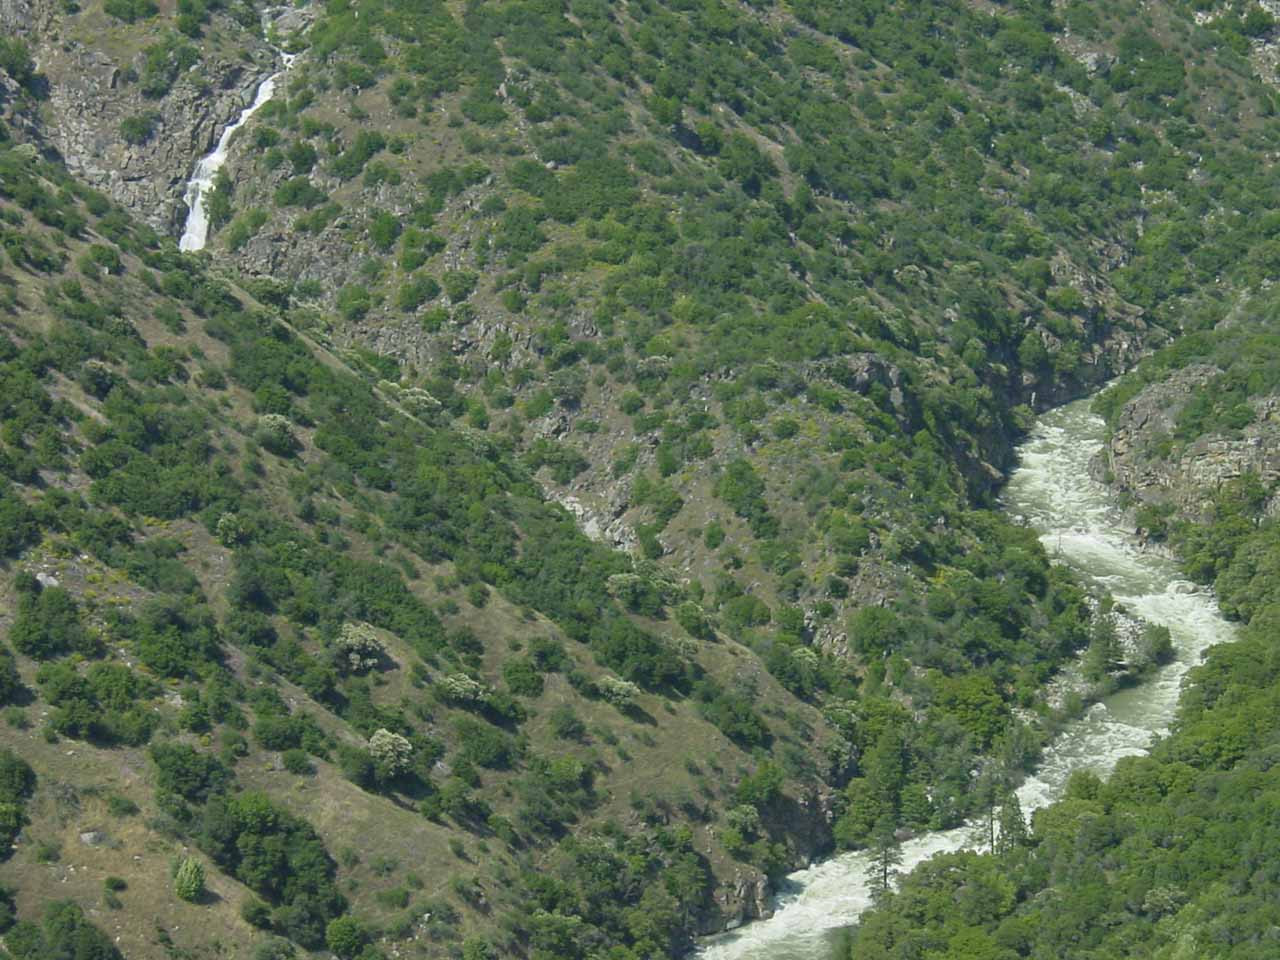 Partial view of a waterfall spilling towards one of the forks of the Kings River